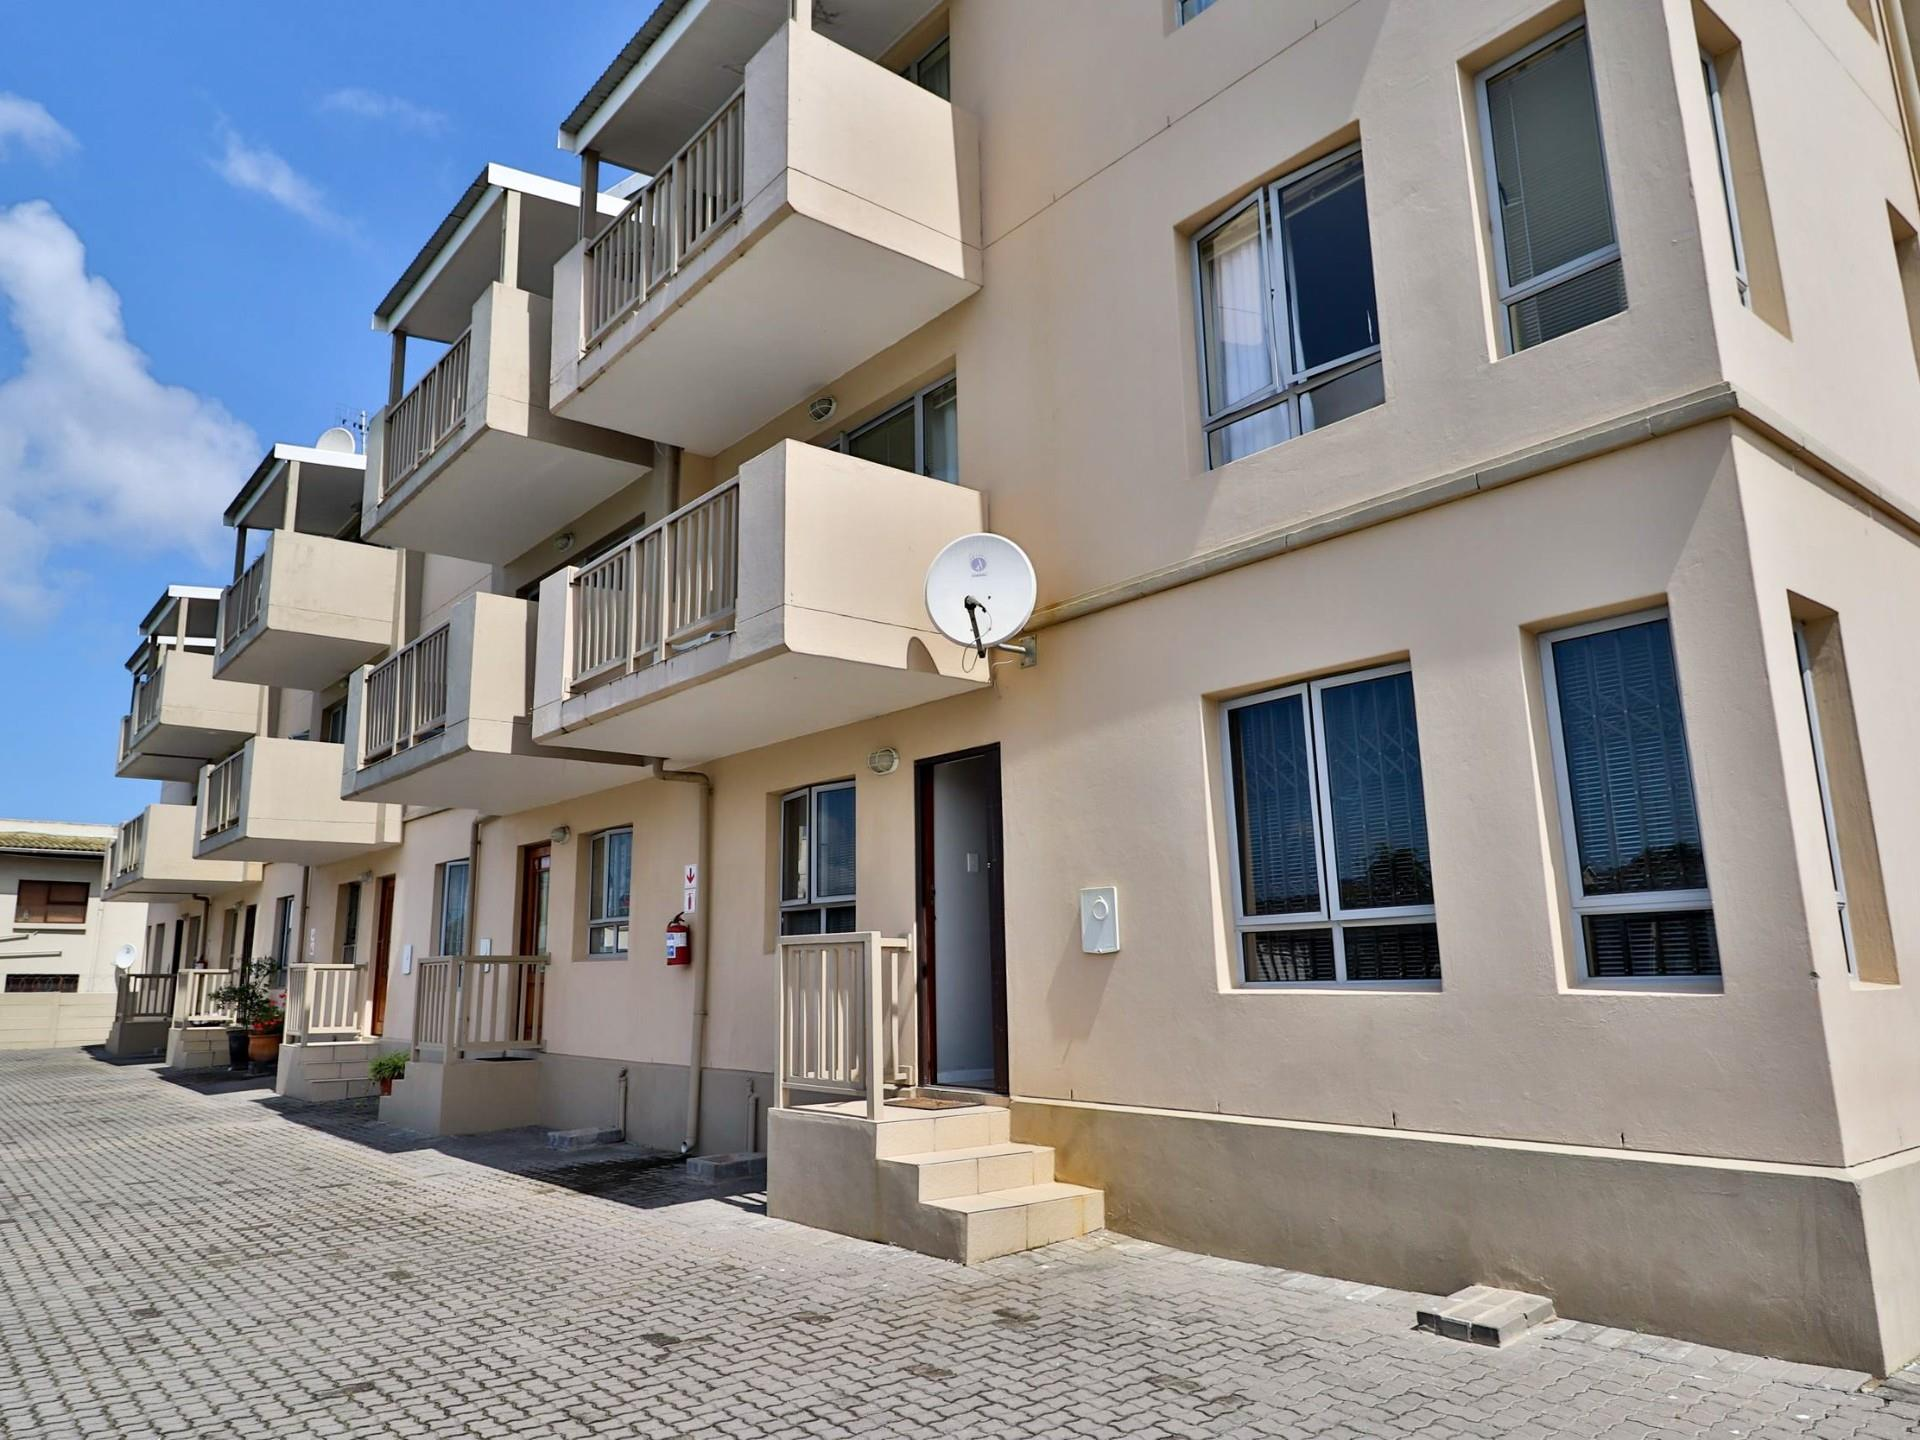 2 Bedroom Apartment For Sale in Knysna Central